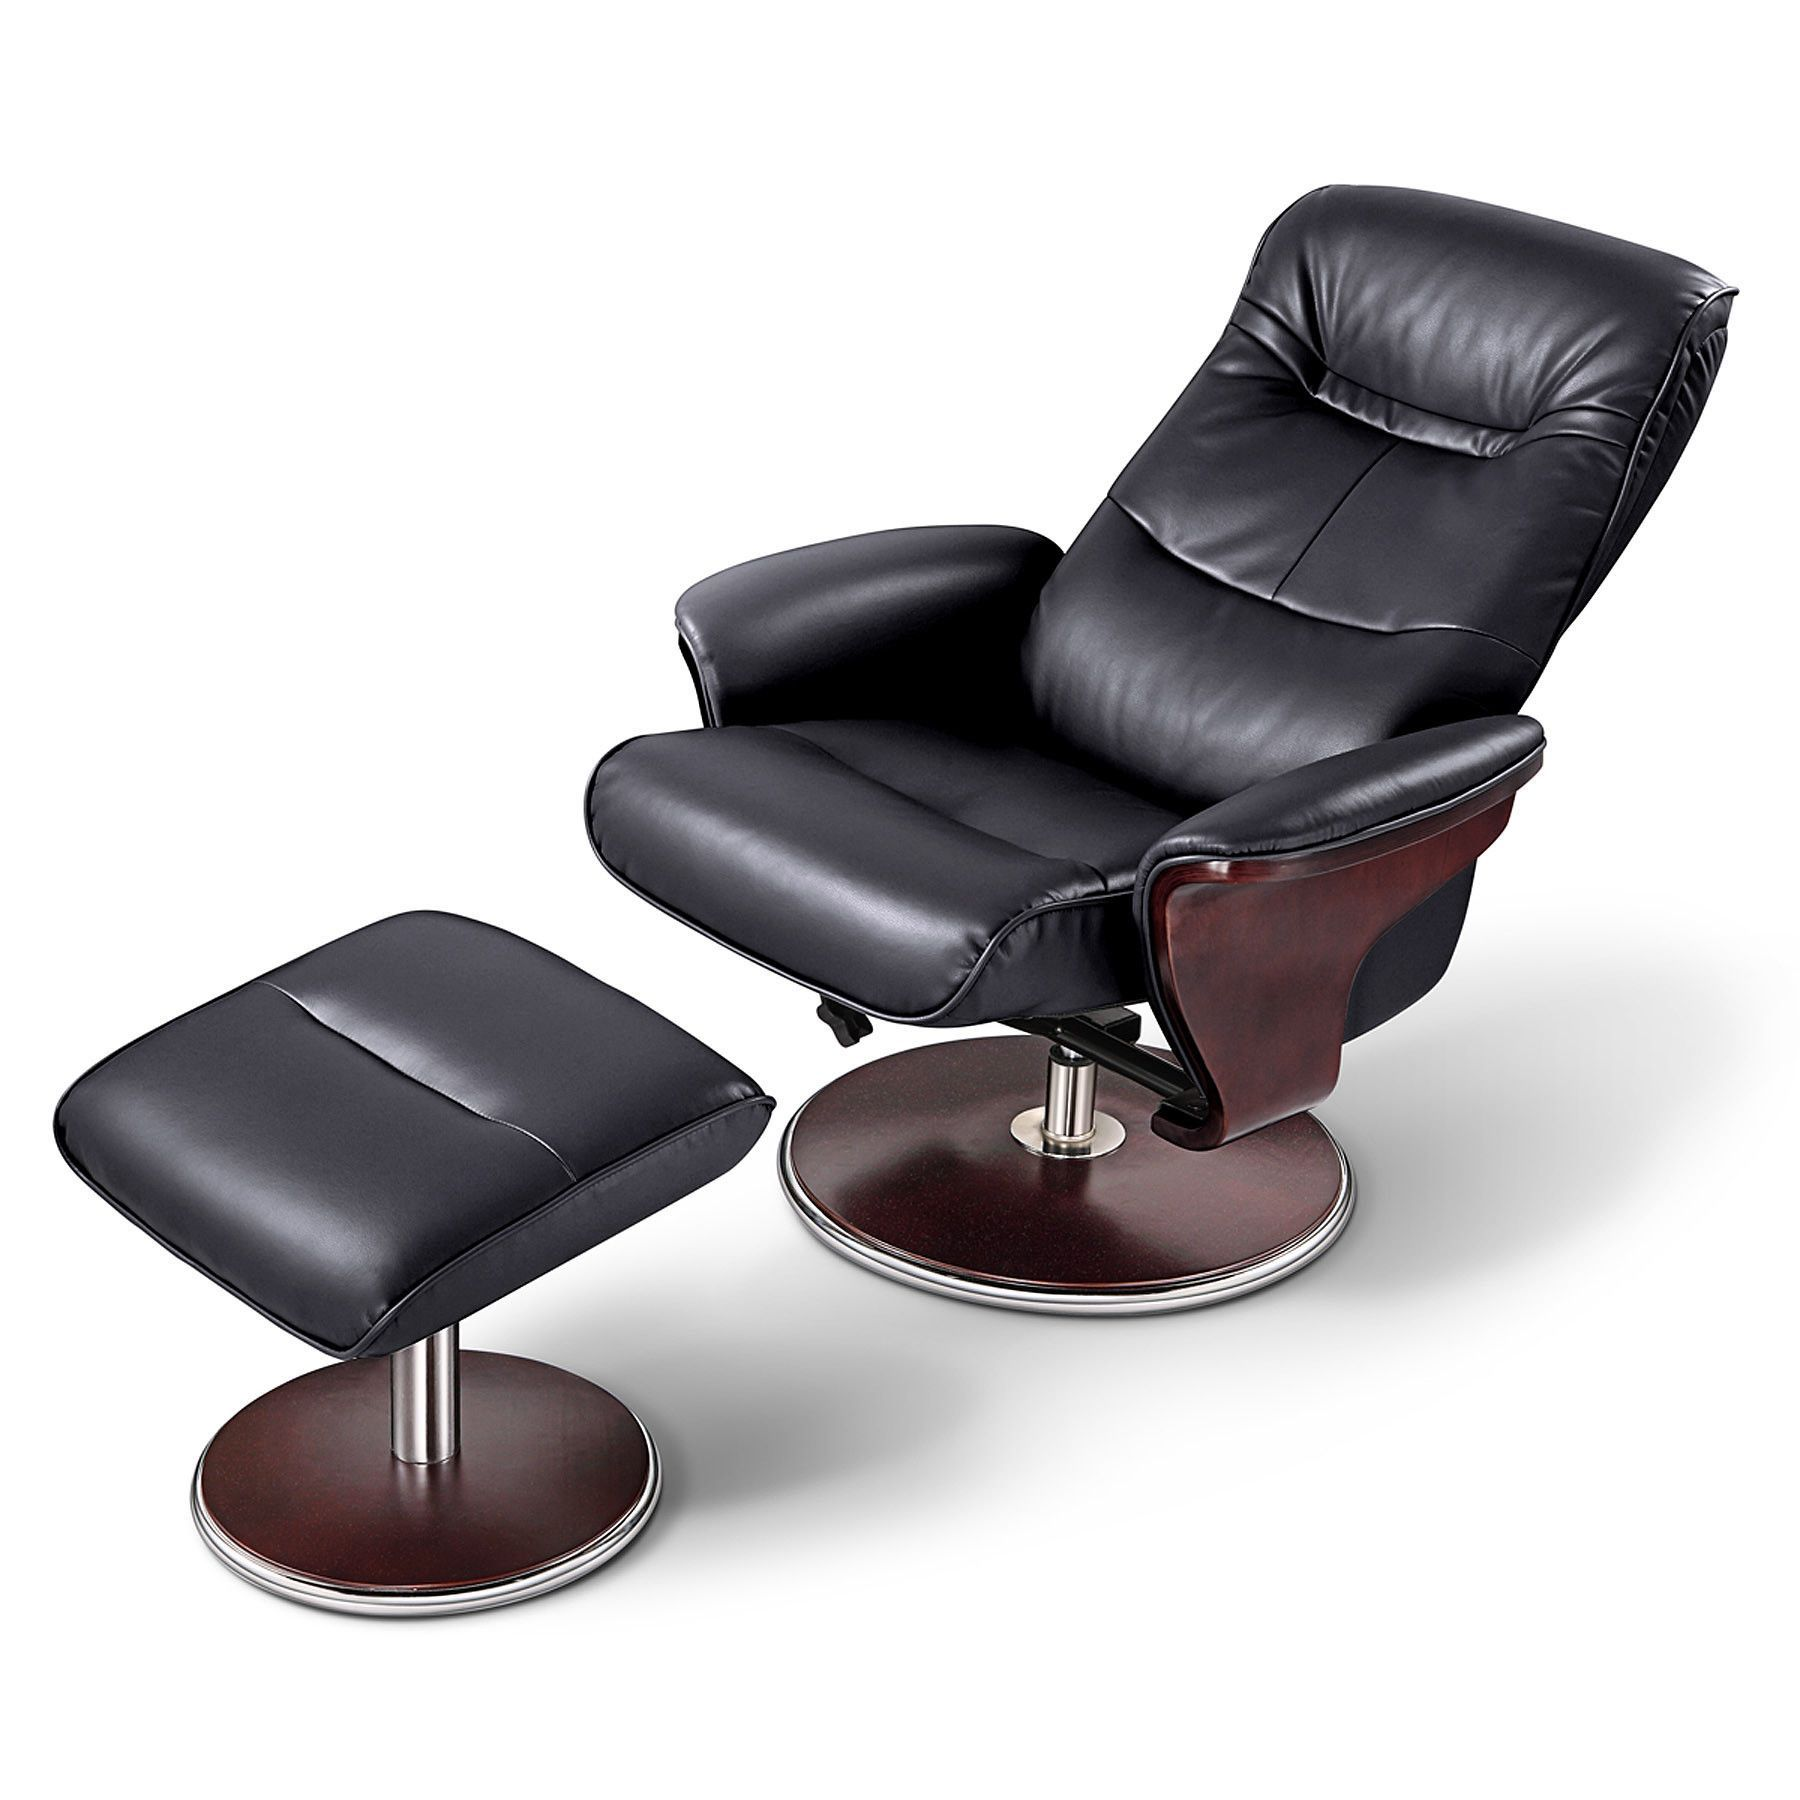 Milano Leather Swivel Recliner And Ottoman Recliner With Ottoman Swivel Recliner Modern Recliner